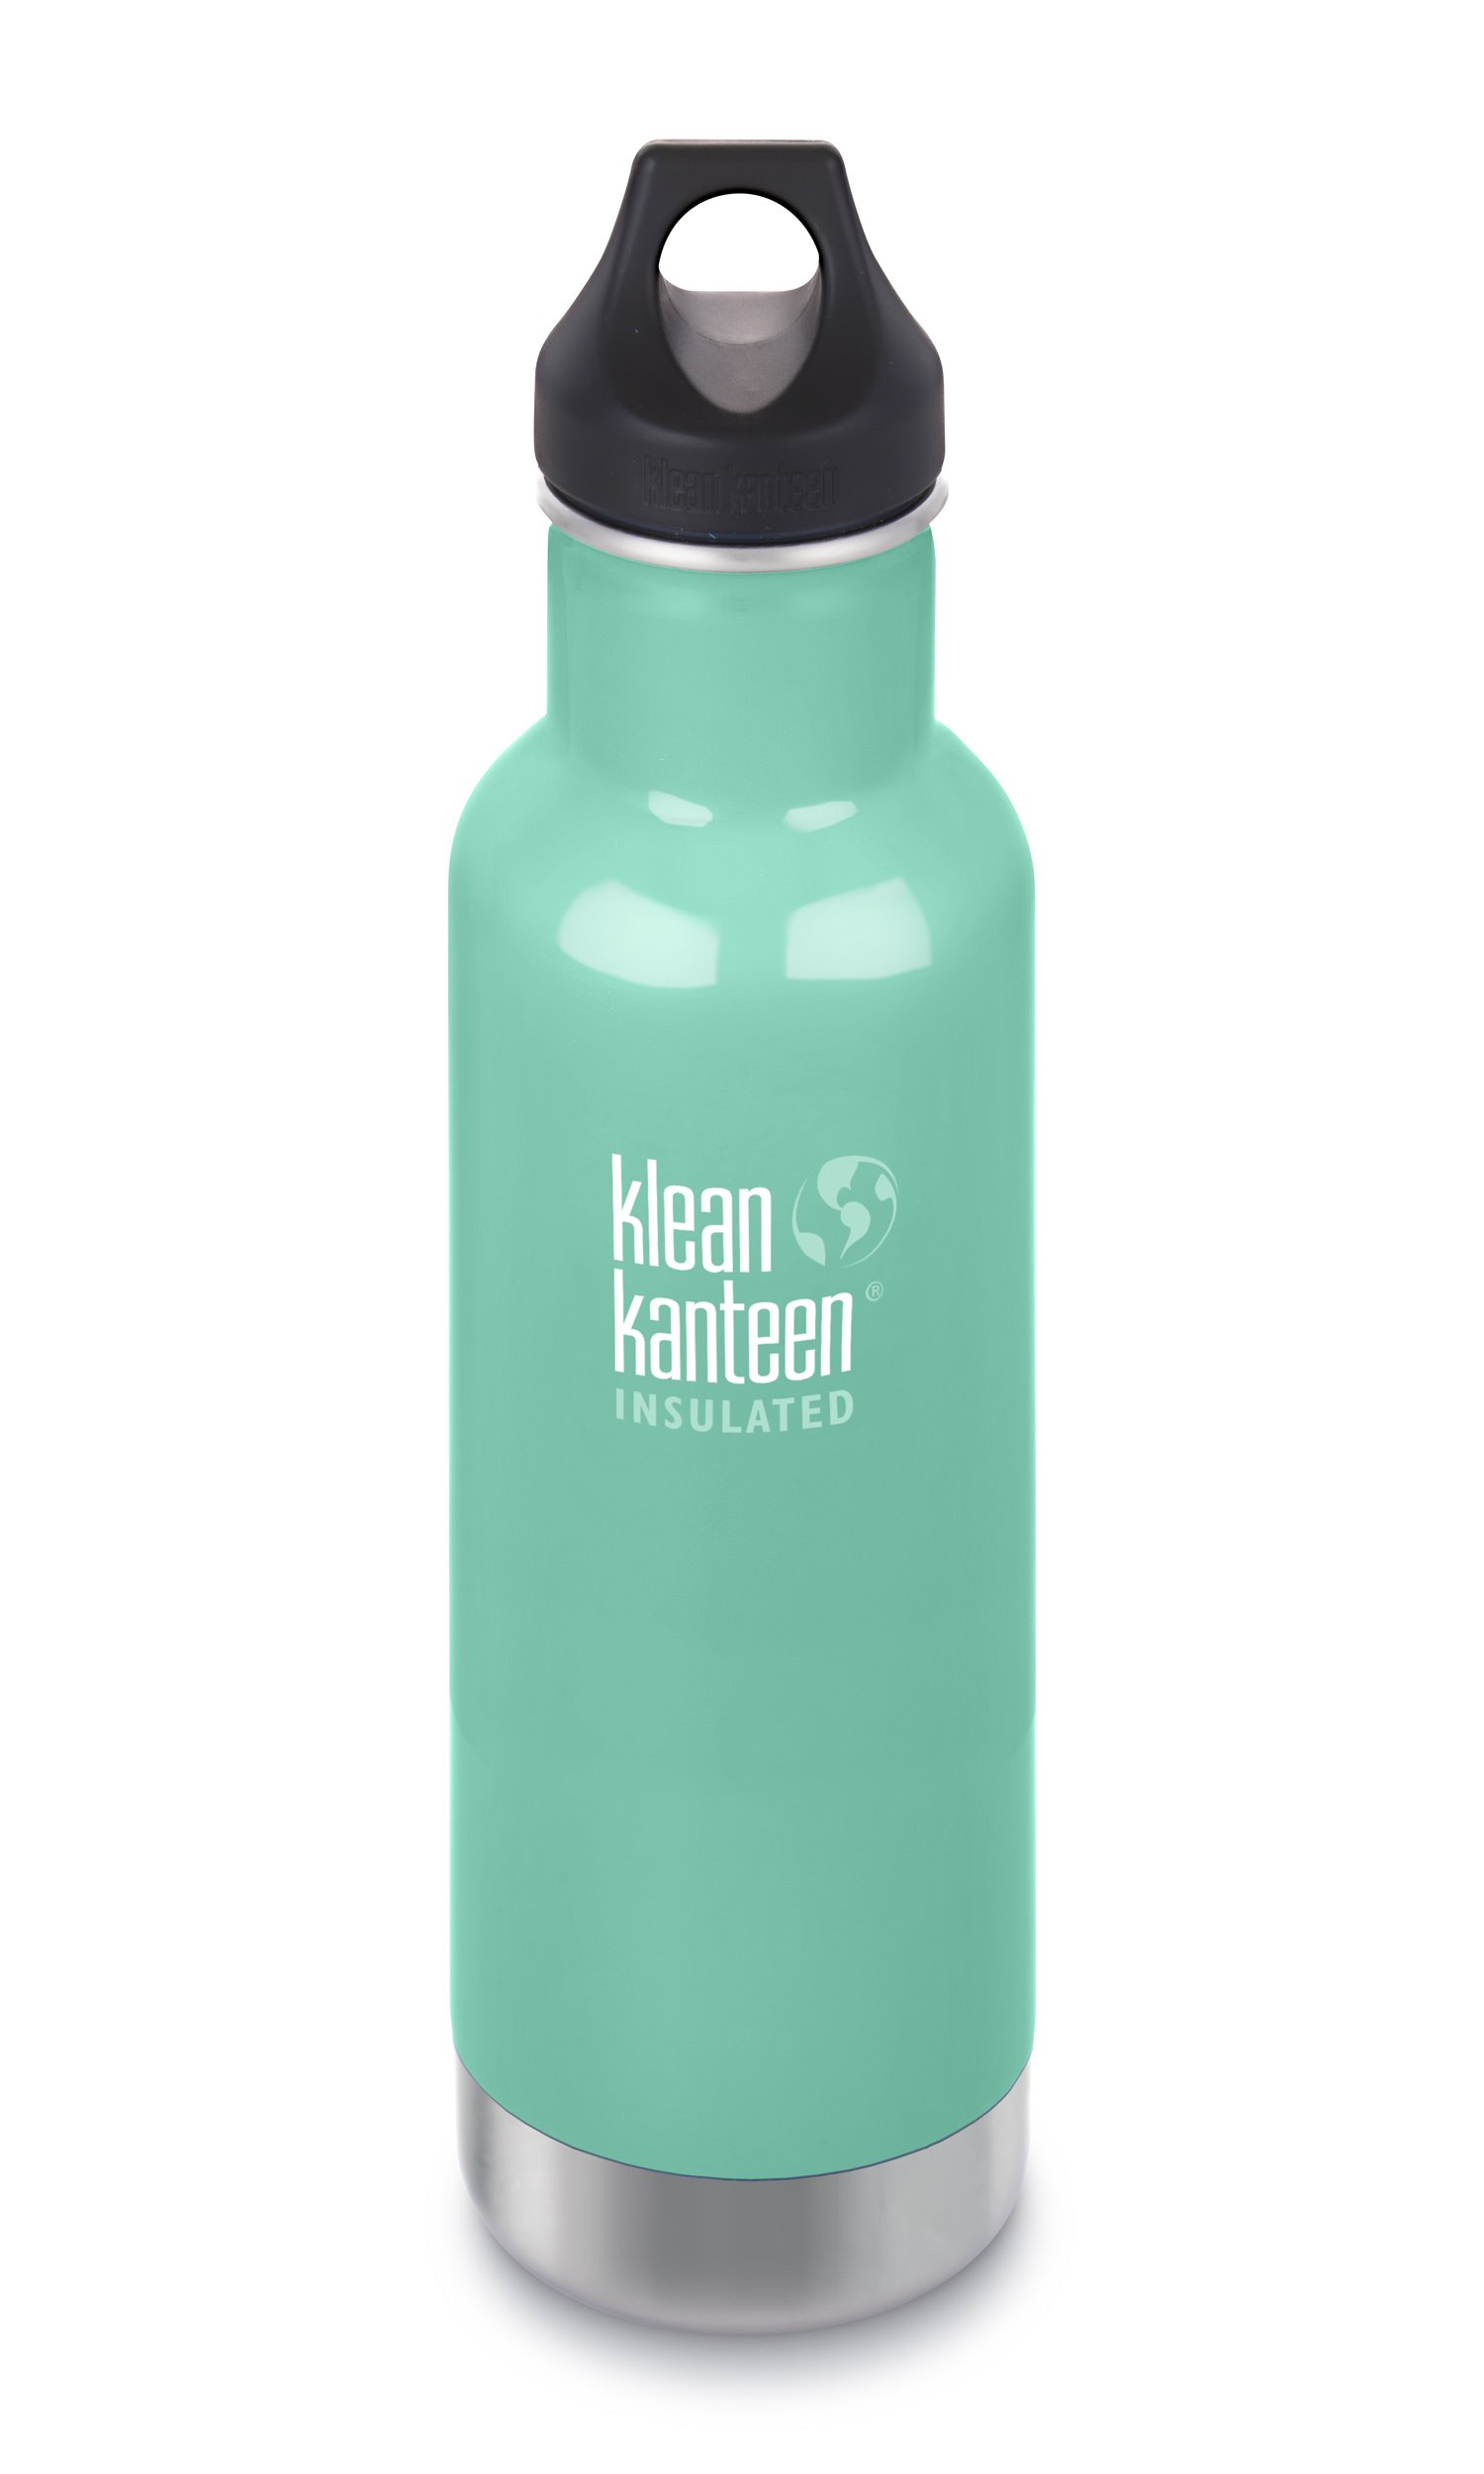 Klean Kanteen Classic Insulated Stainless Steel Water Bottle with Klean Coat and Leak Proof Loop Cap - 20oz - Sea Crest